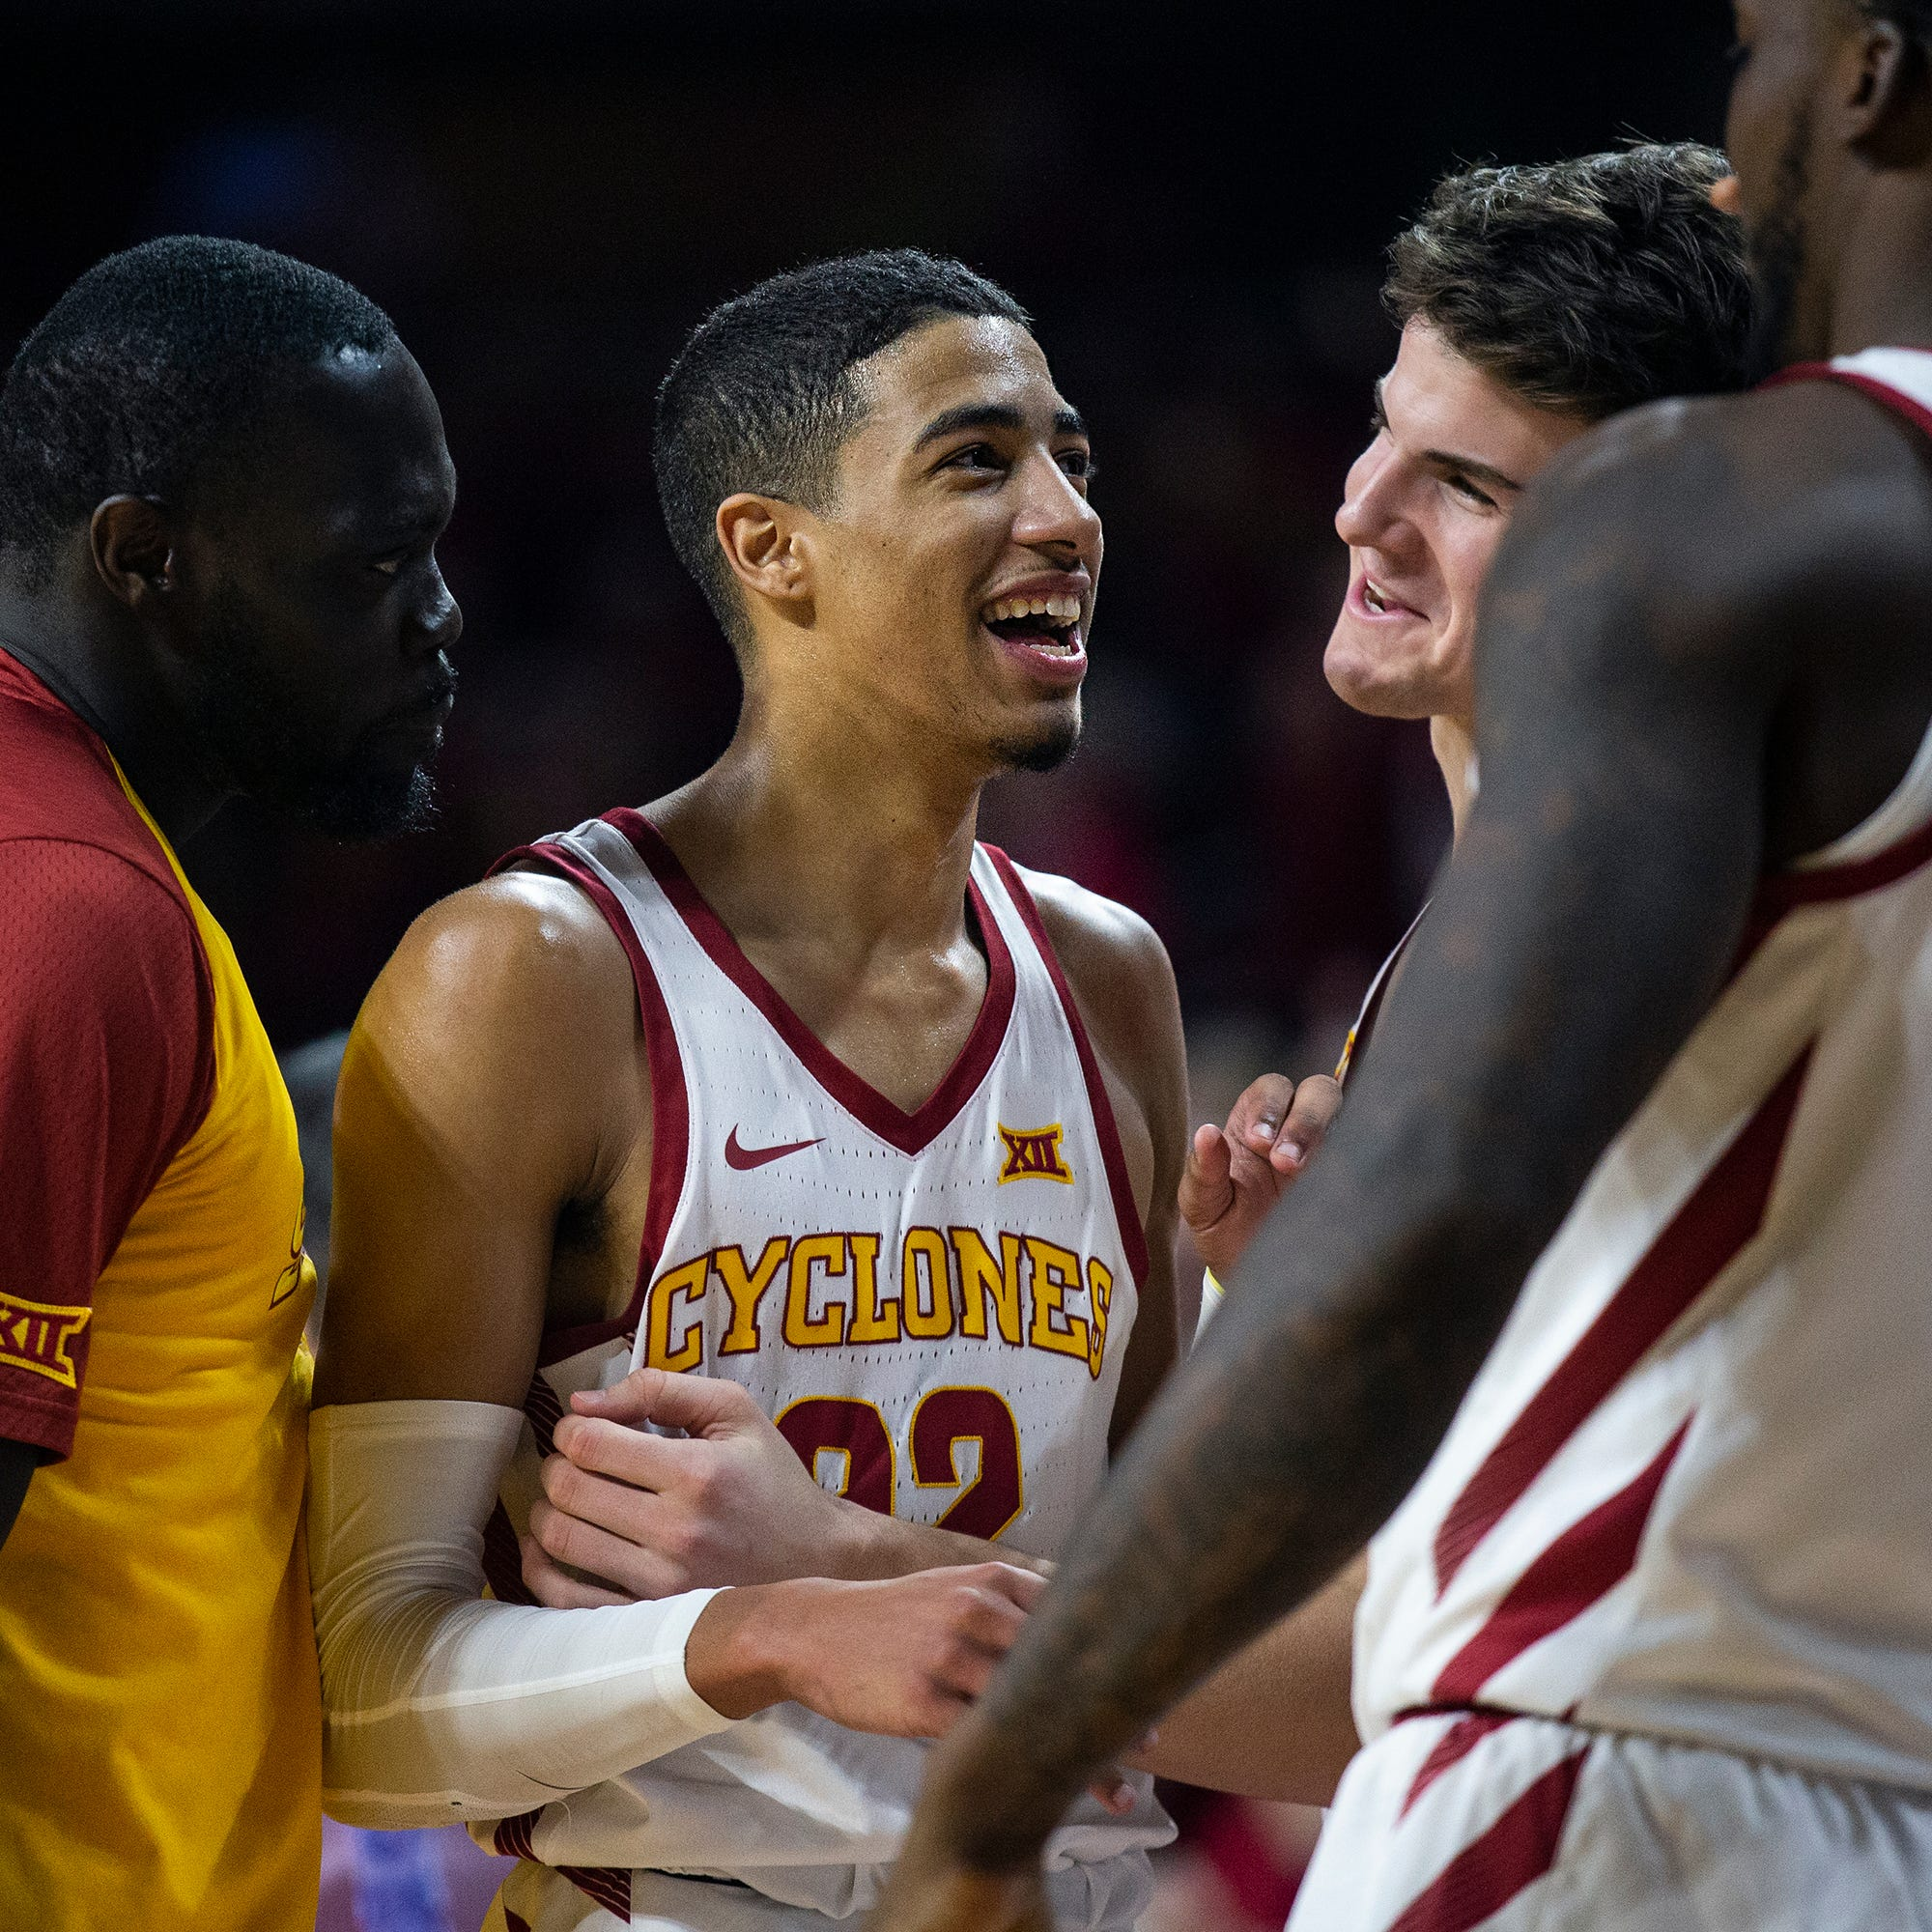 Former Oshkosh North star Tyrese Haliburton chasing dreams, breaking records at Iowa State